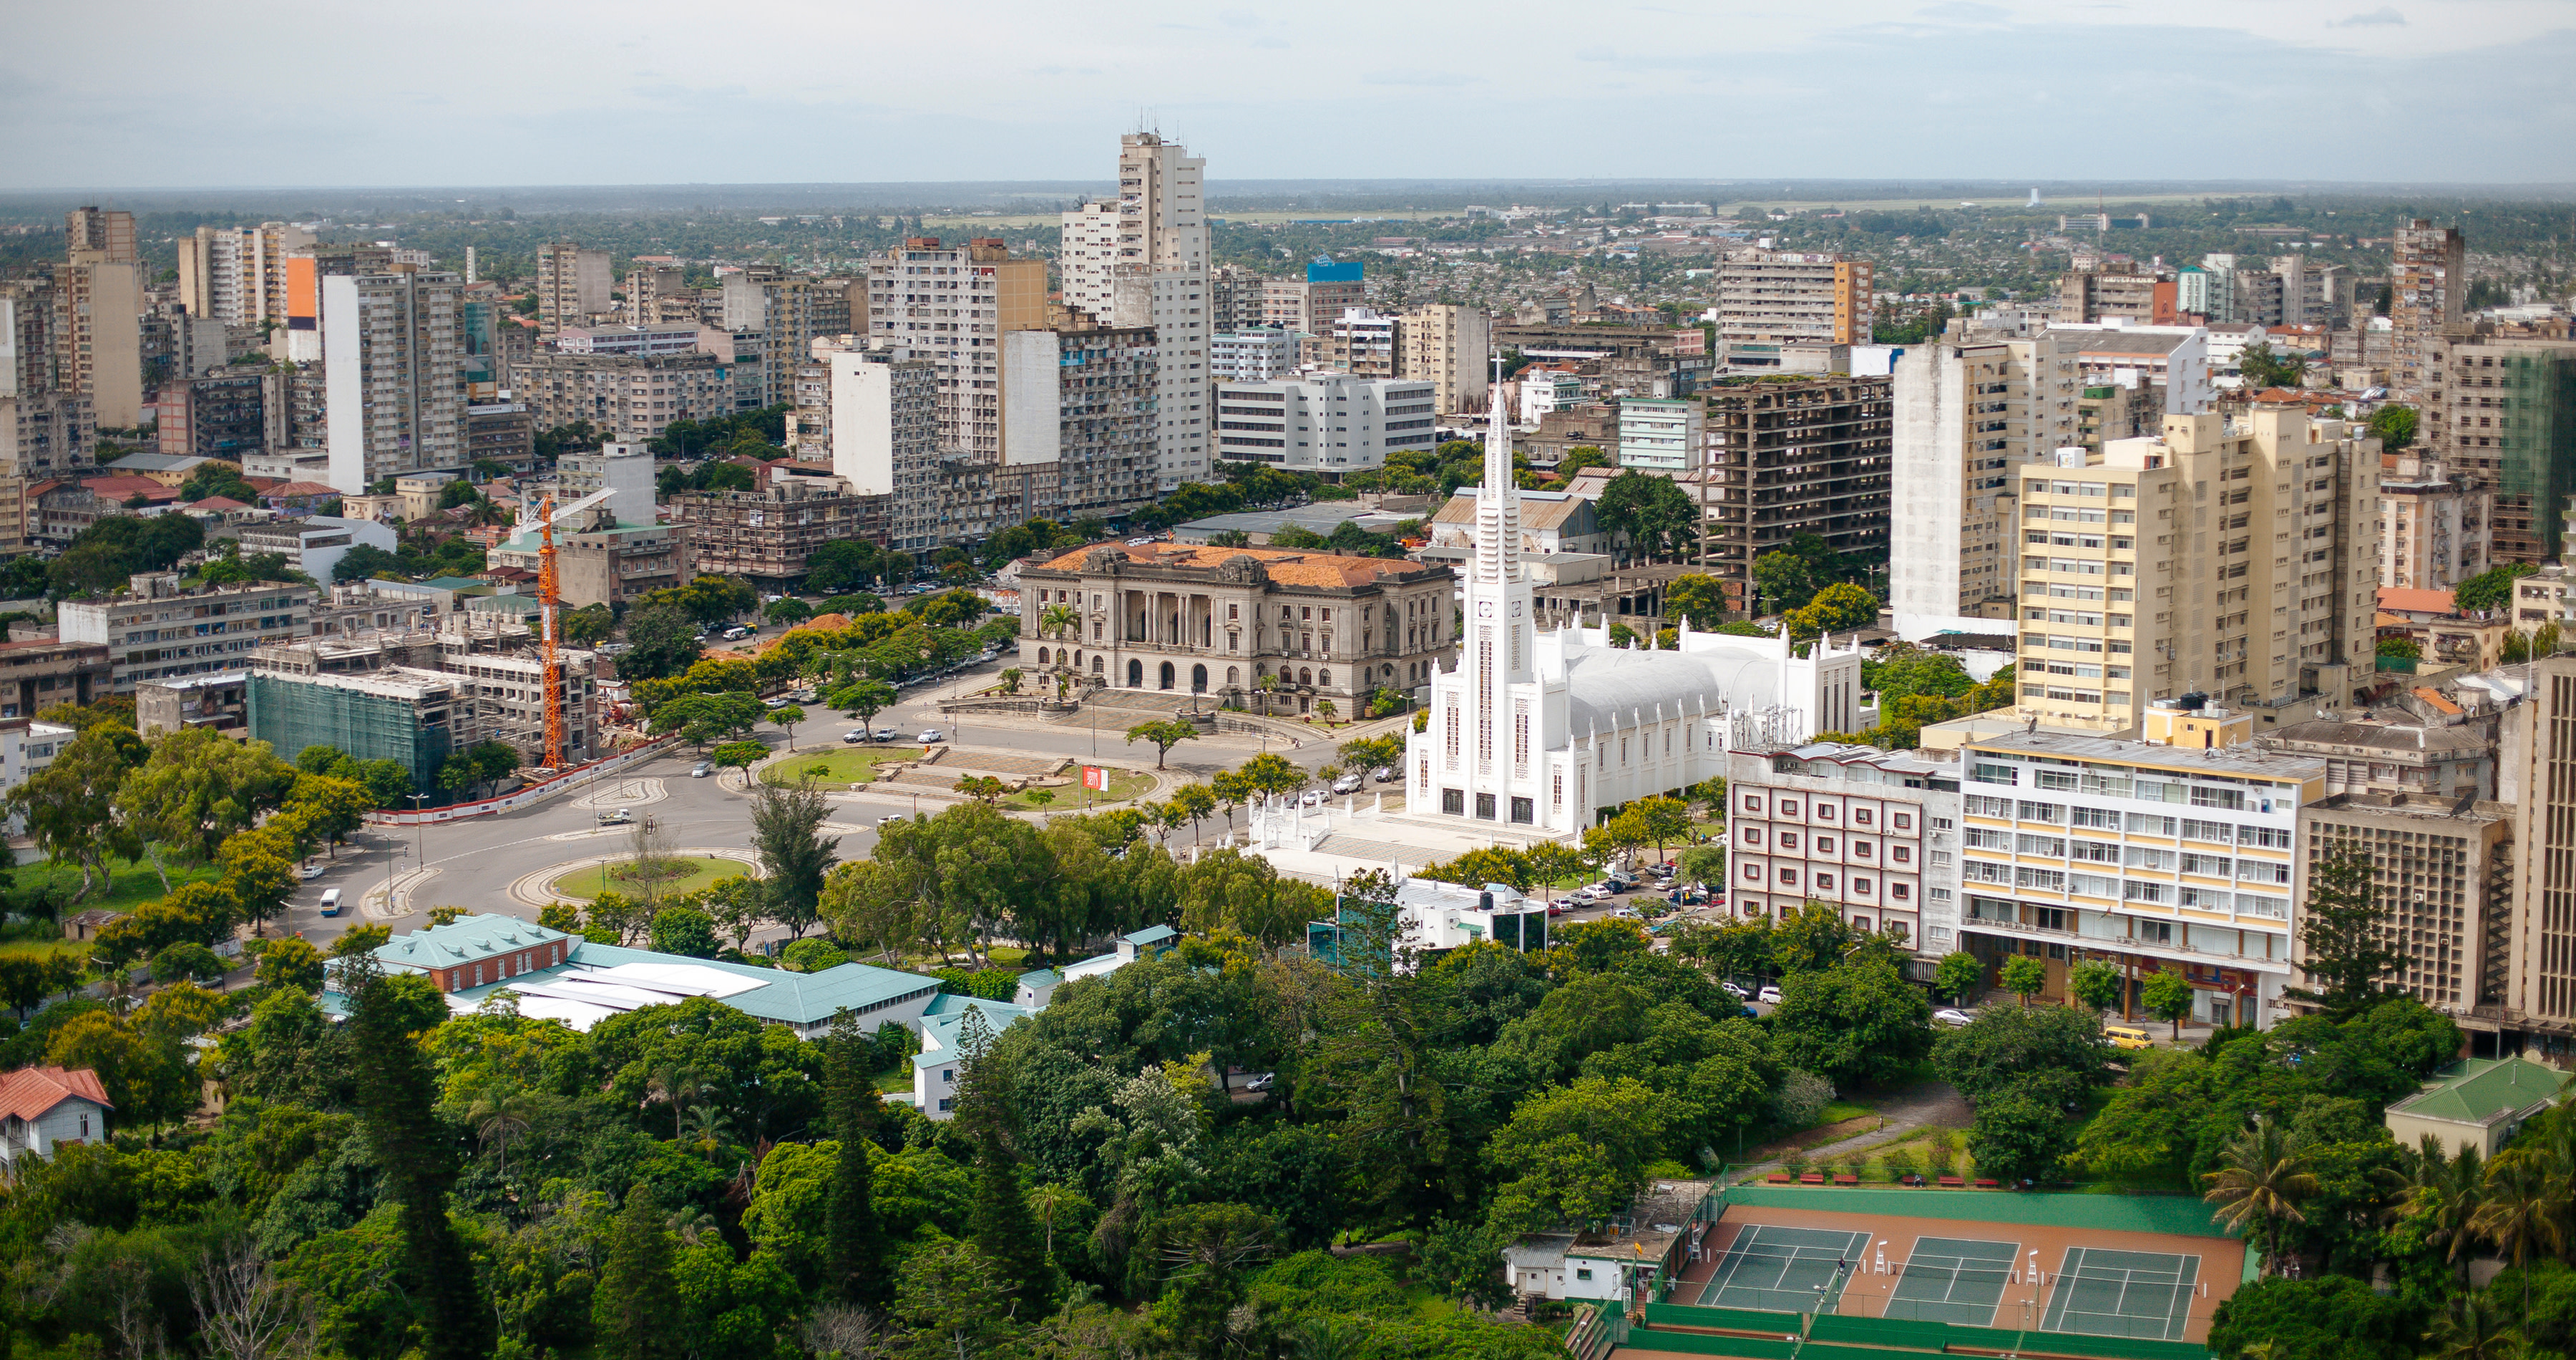 A view of Maputo the capital of Mozambique, Africa - Mozambique travel guide